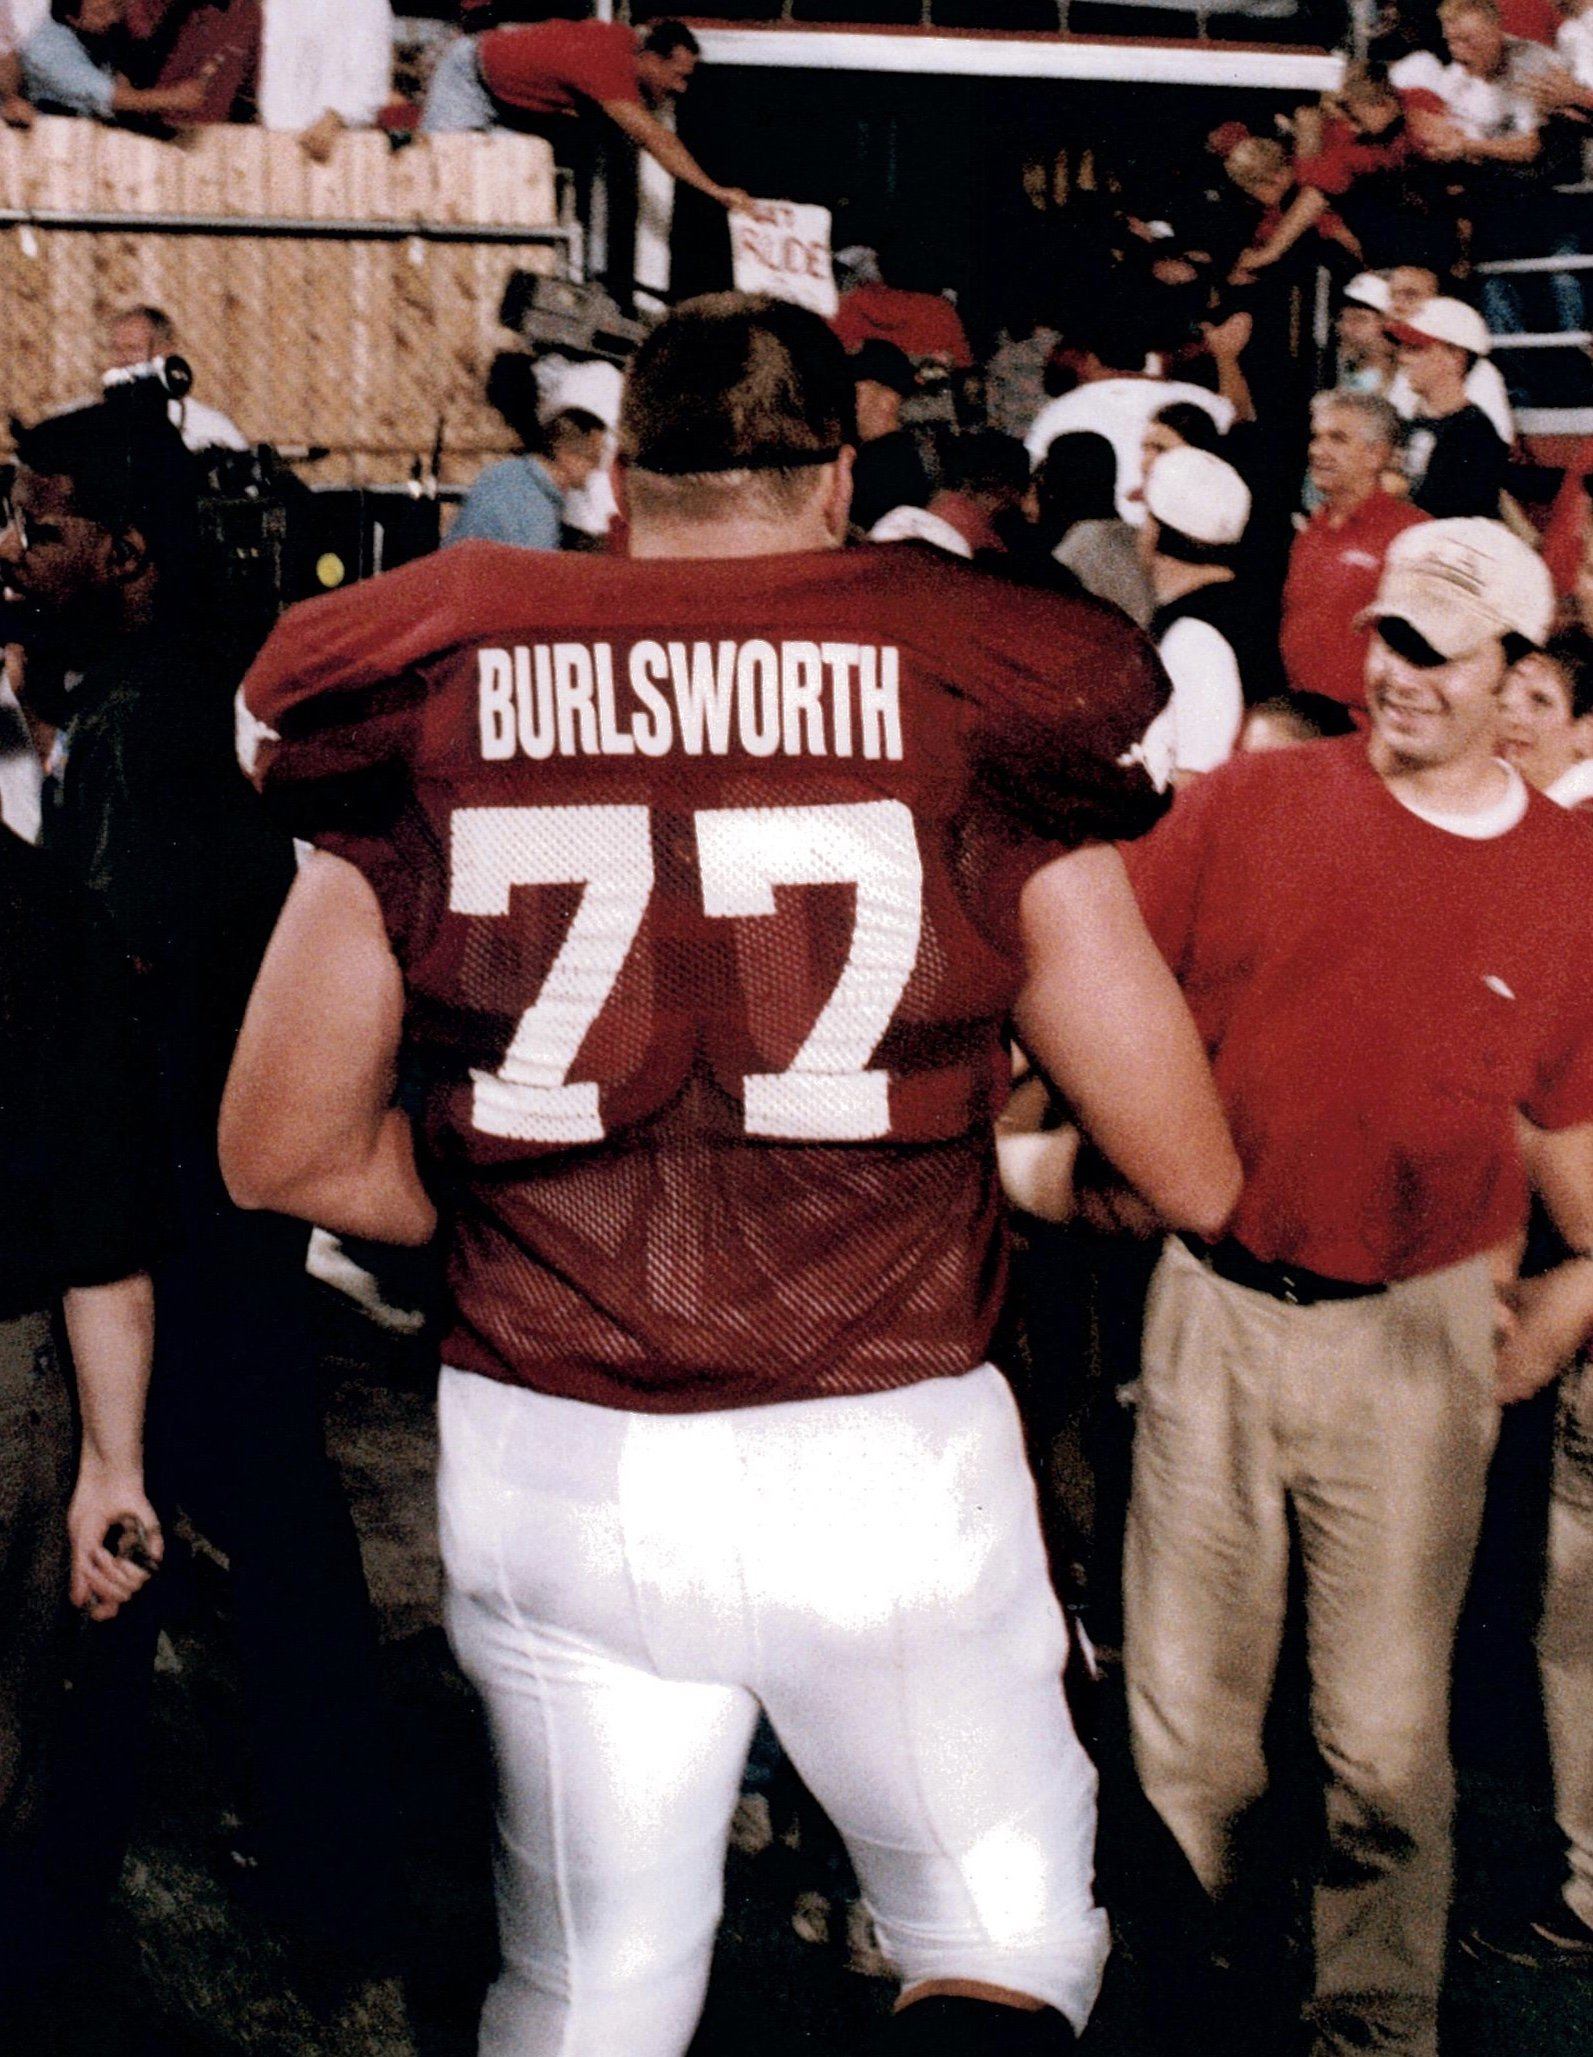 Brandon Burlsworth leaves the field at War Memorial Stadium in Little Rock in the 1998 season. (Photo by Brandon's brother, Marty)